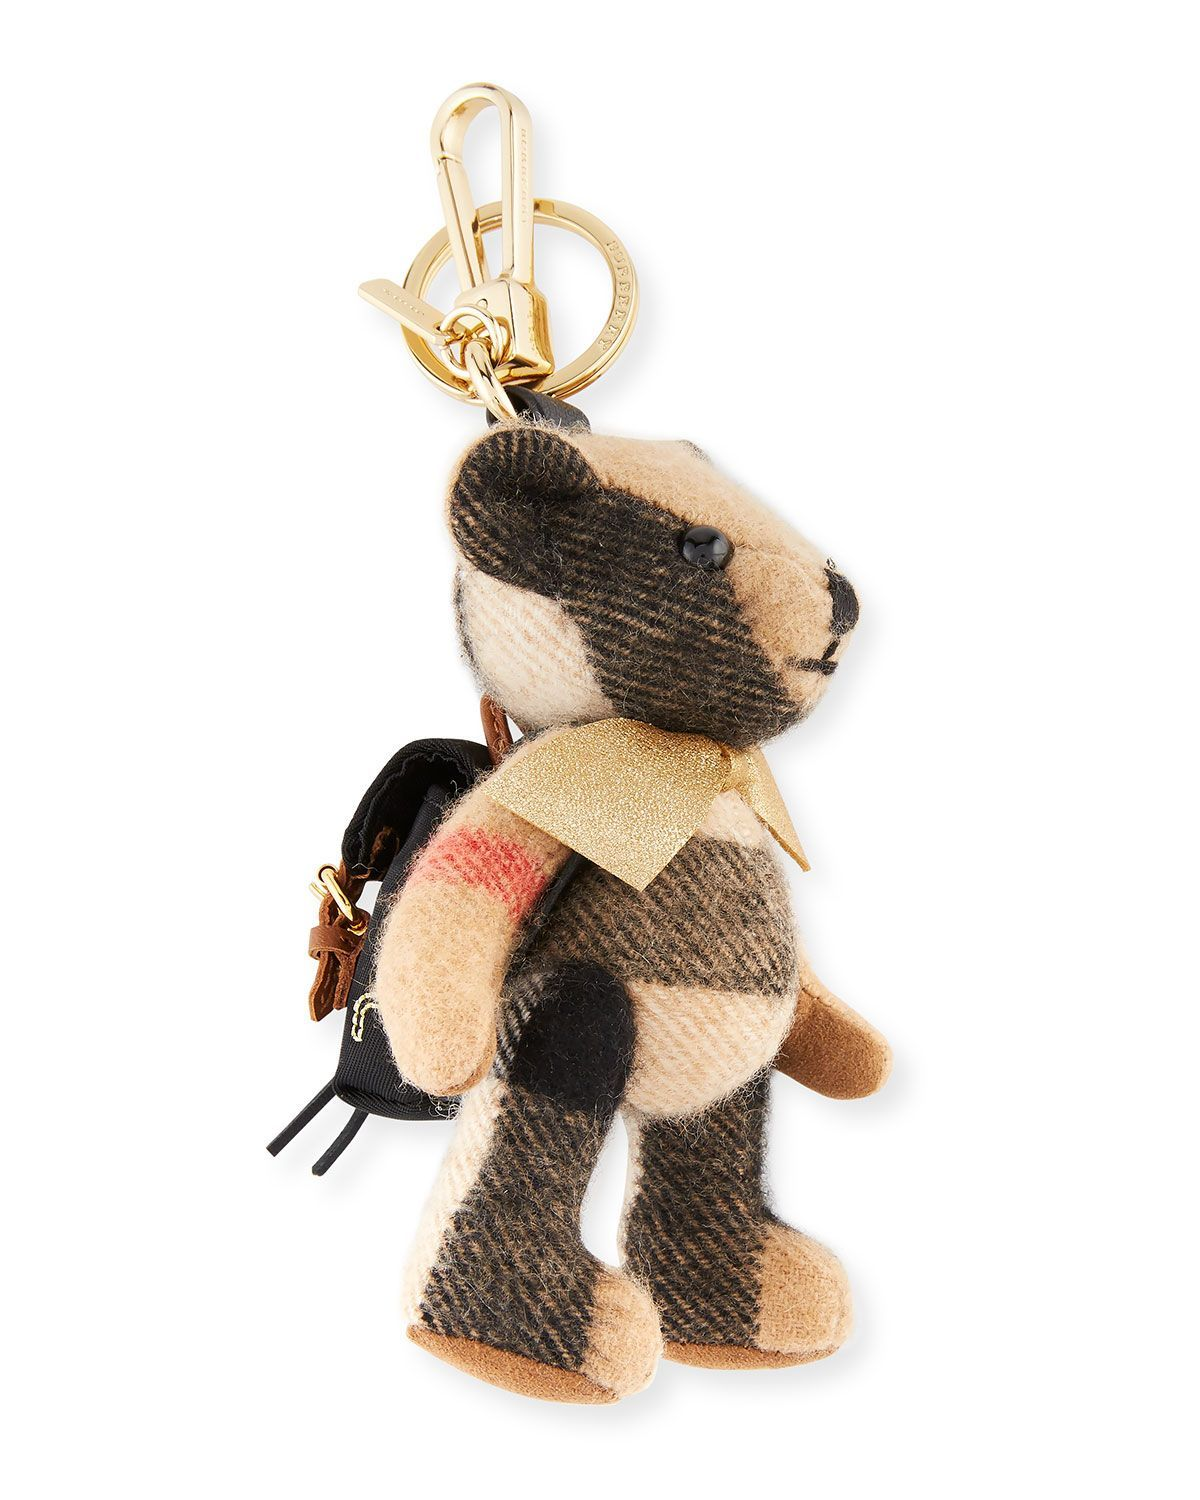 All Size Thomas Bear Charm with Rucksack - Multicolour Burberry Free Shipping 100% Authentic 7kdZttYH